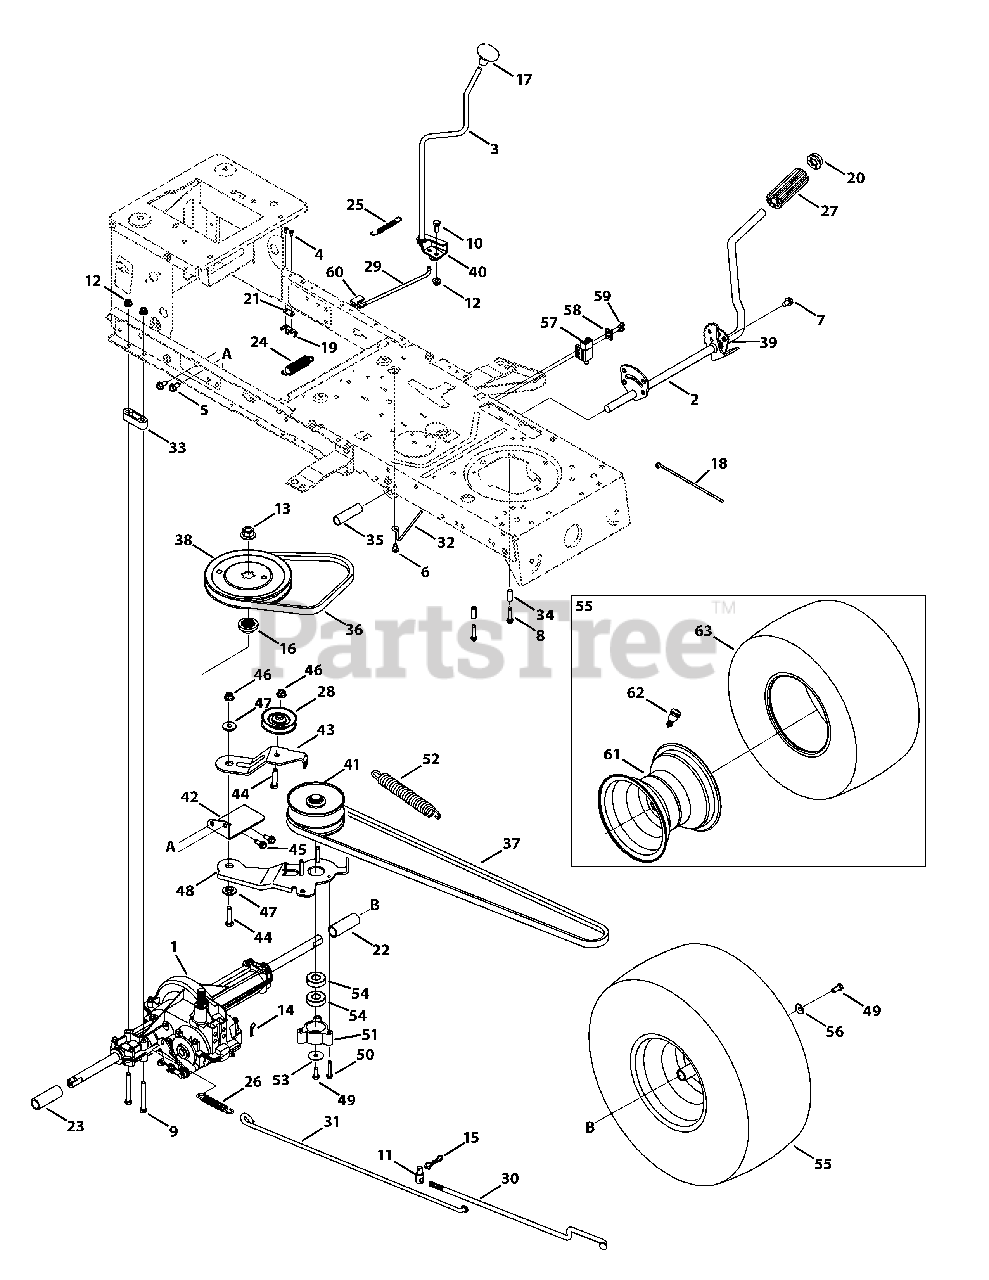 Huskee LT 4200 (13W2771S031) - Huskee Lawn Tractor (2012) Transmission  Drive Assembly Parts Lookup with Diagrams   PartsTreePartsTree